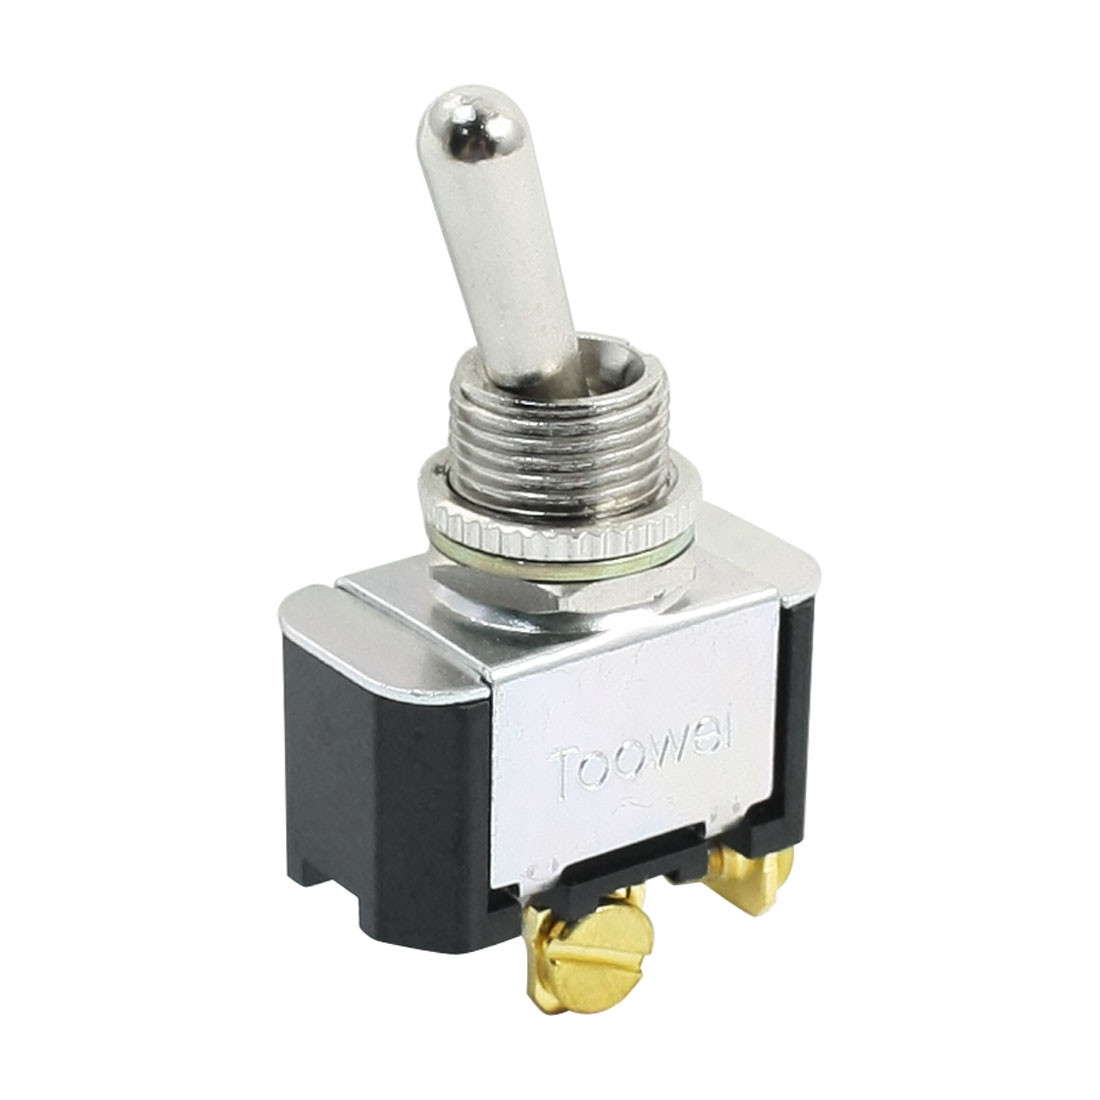 12mm Panel Mounted SPST ON-OFF Self Locking Toggle Switch AC 250V 10A T6011W